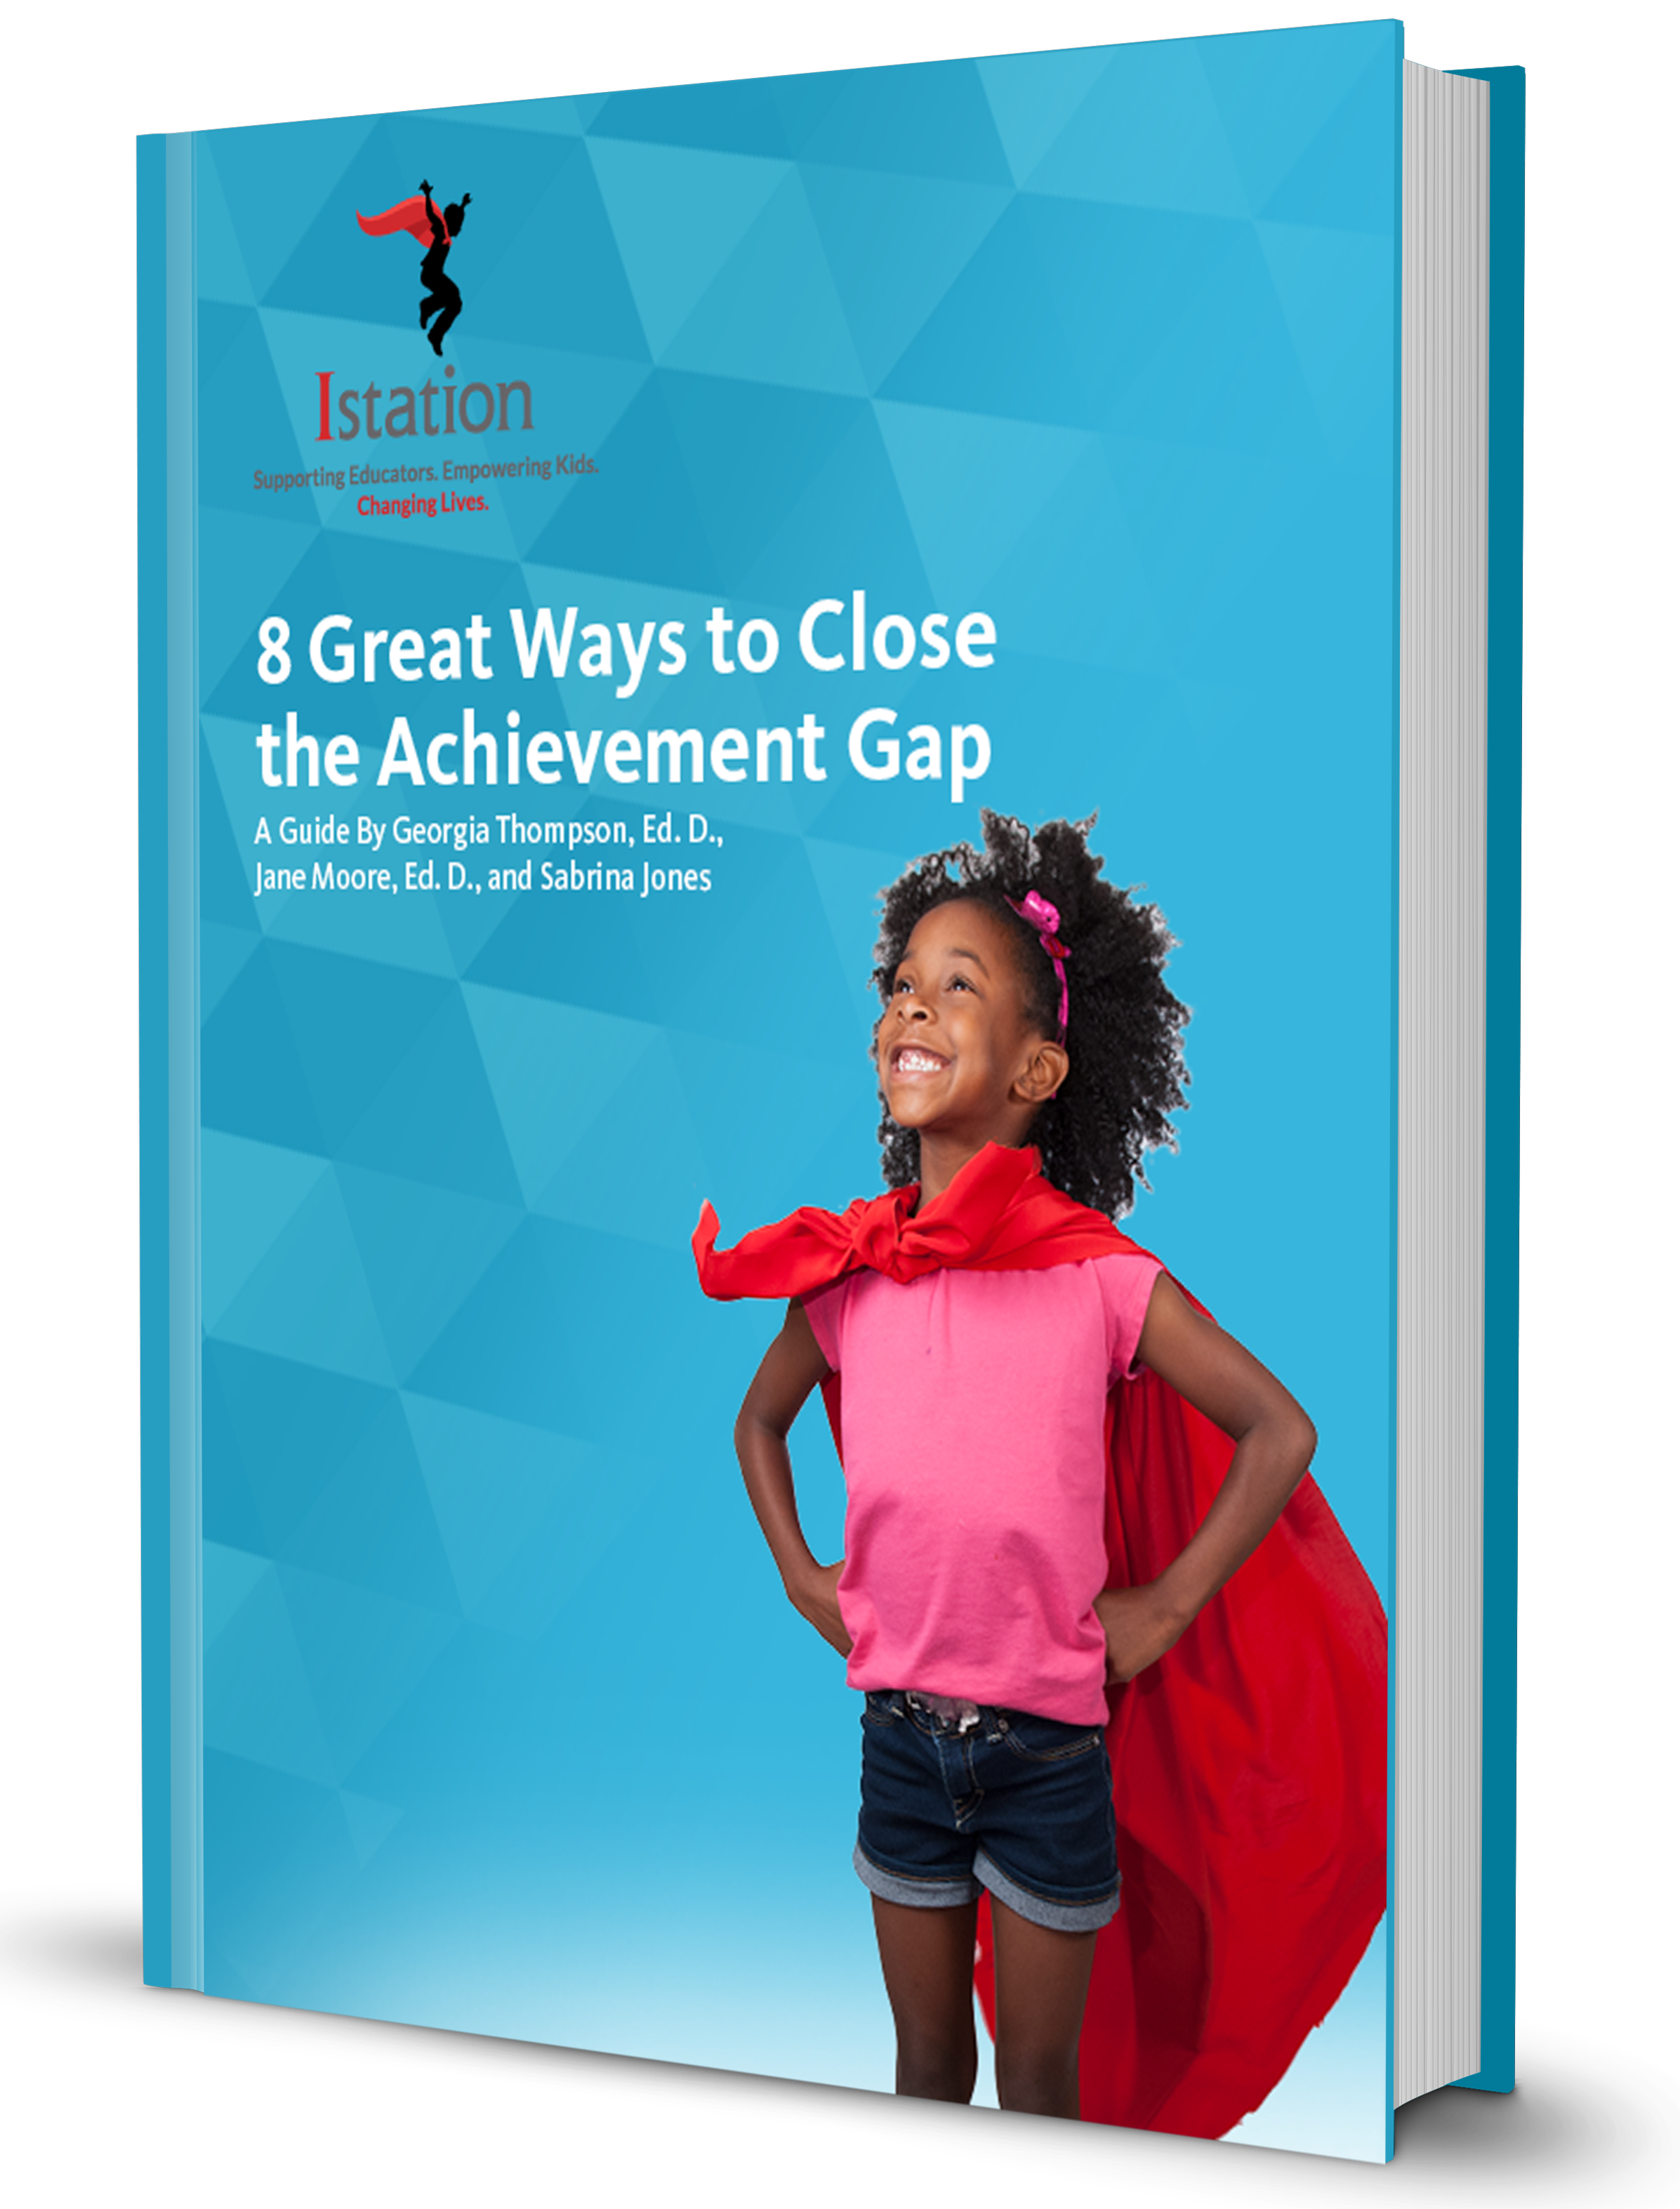 8 Great Ways to Close the Achievement Gap